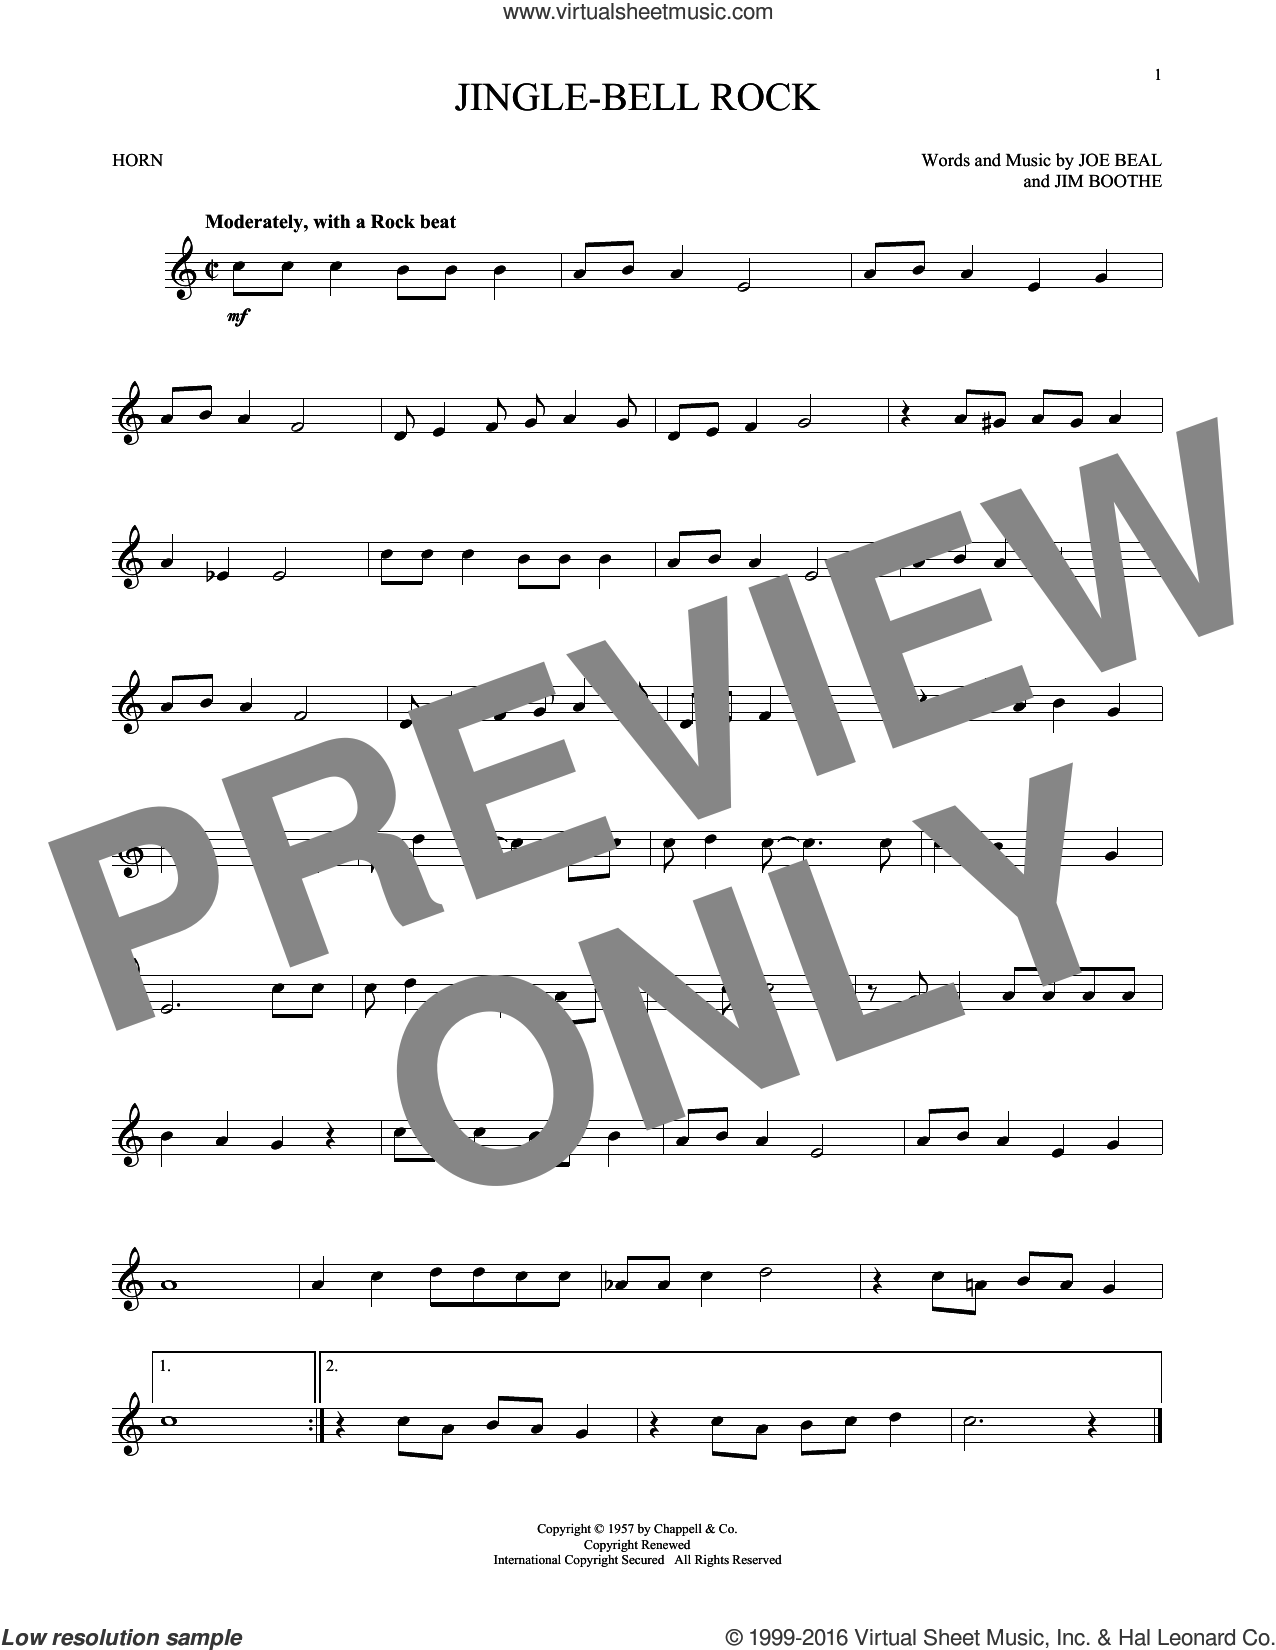 Jingle Bell Rock sheet music for horn solo by Bobby Helms, Aaron Tippin, Jim Boothe and Joe Beal, intermediate skill level